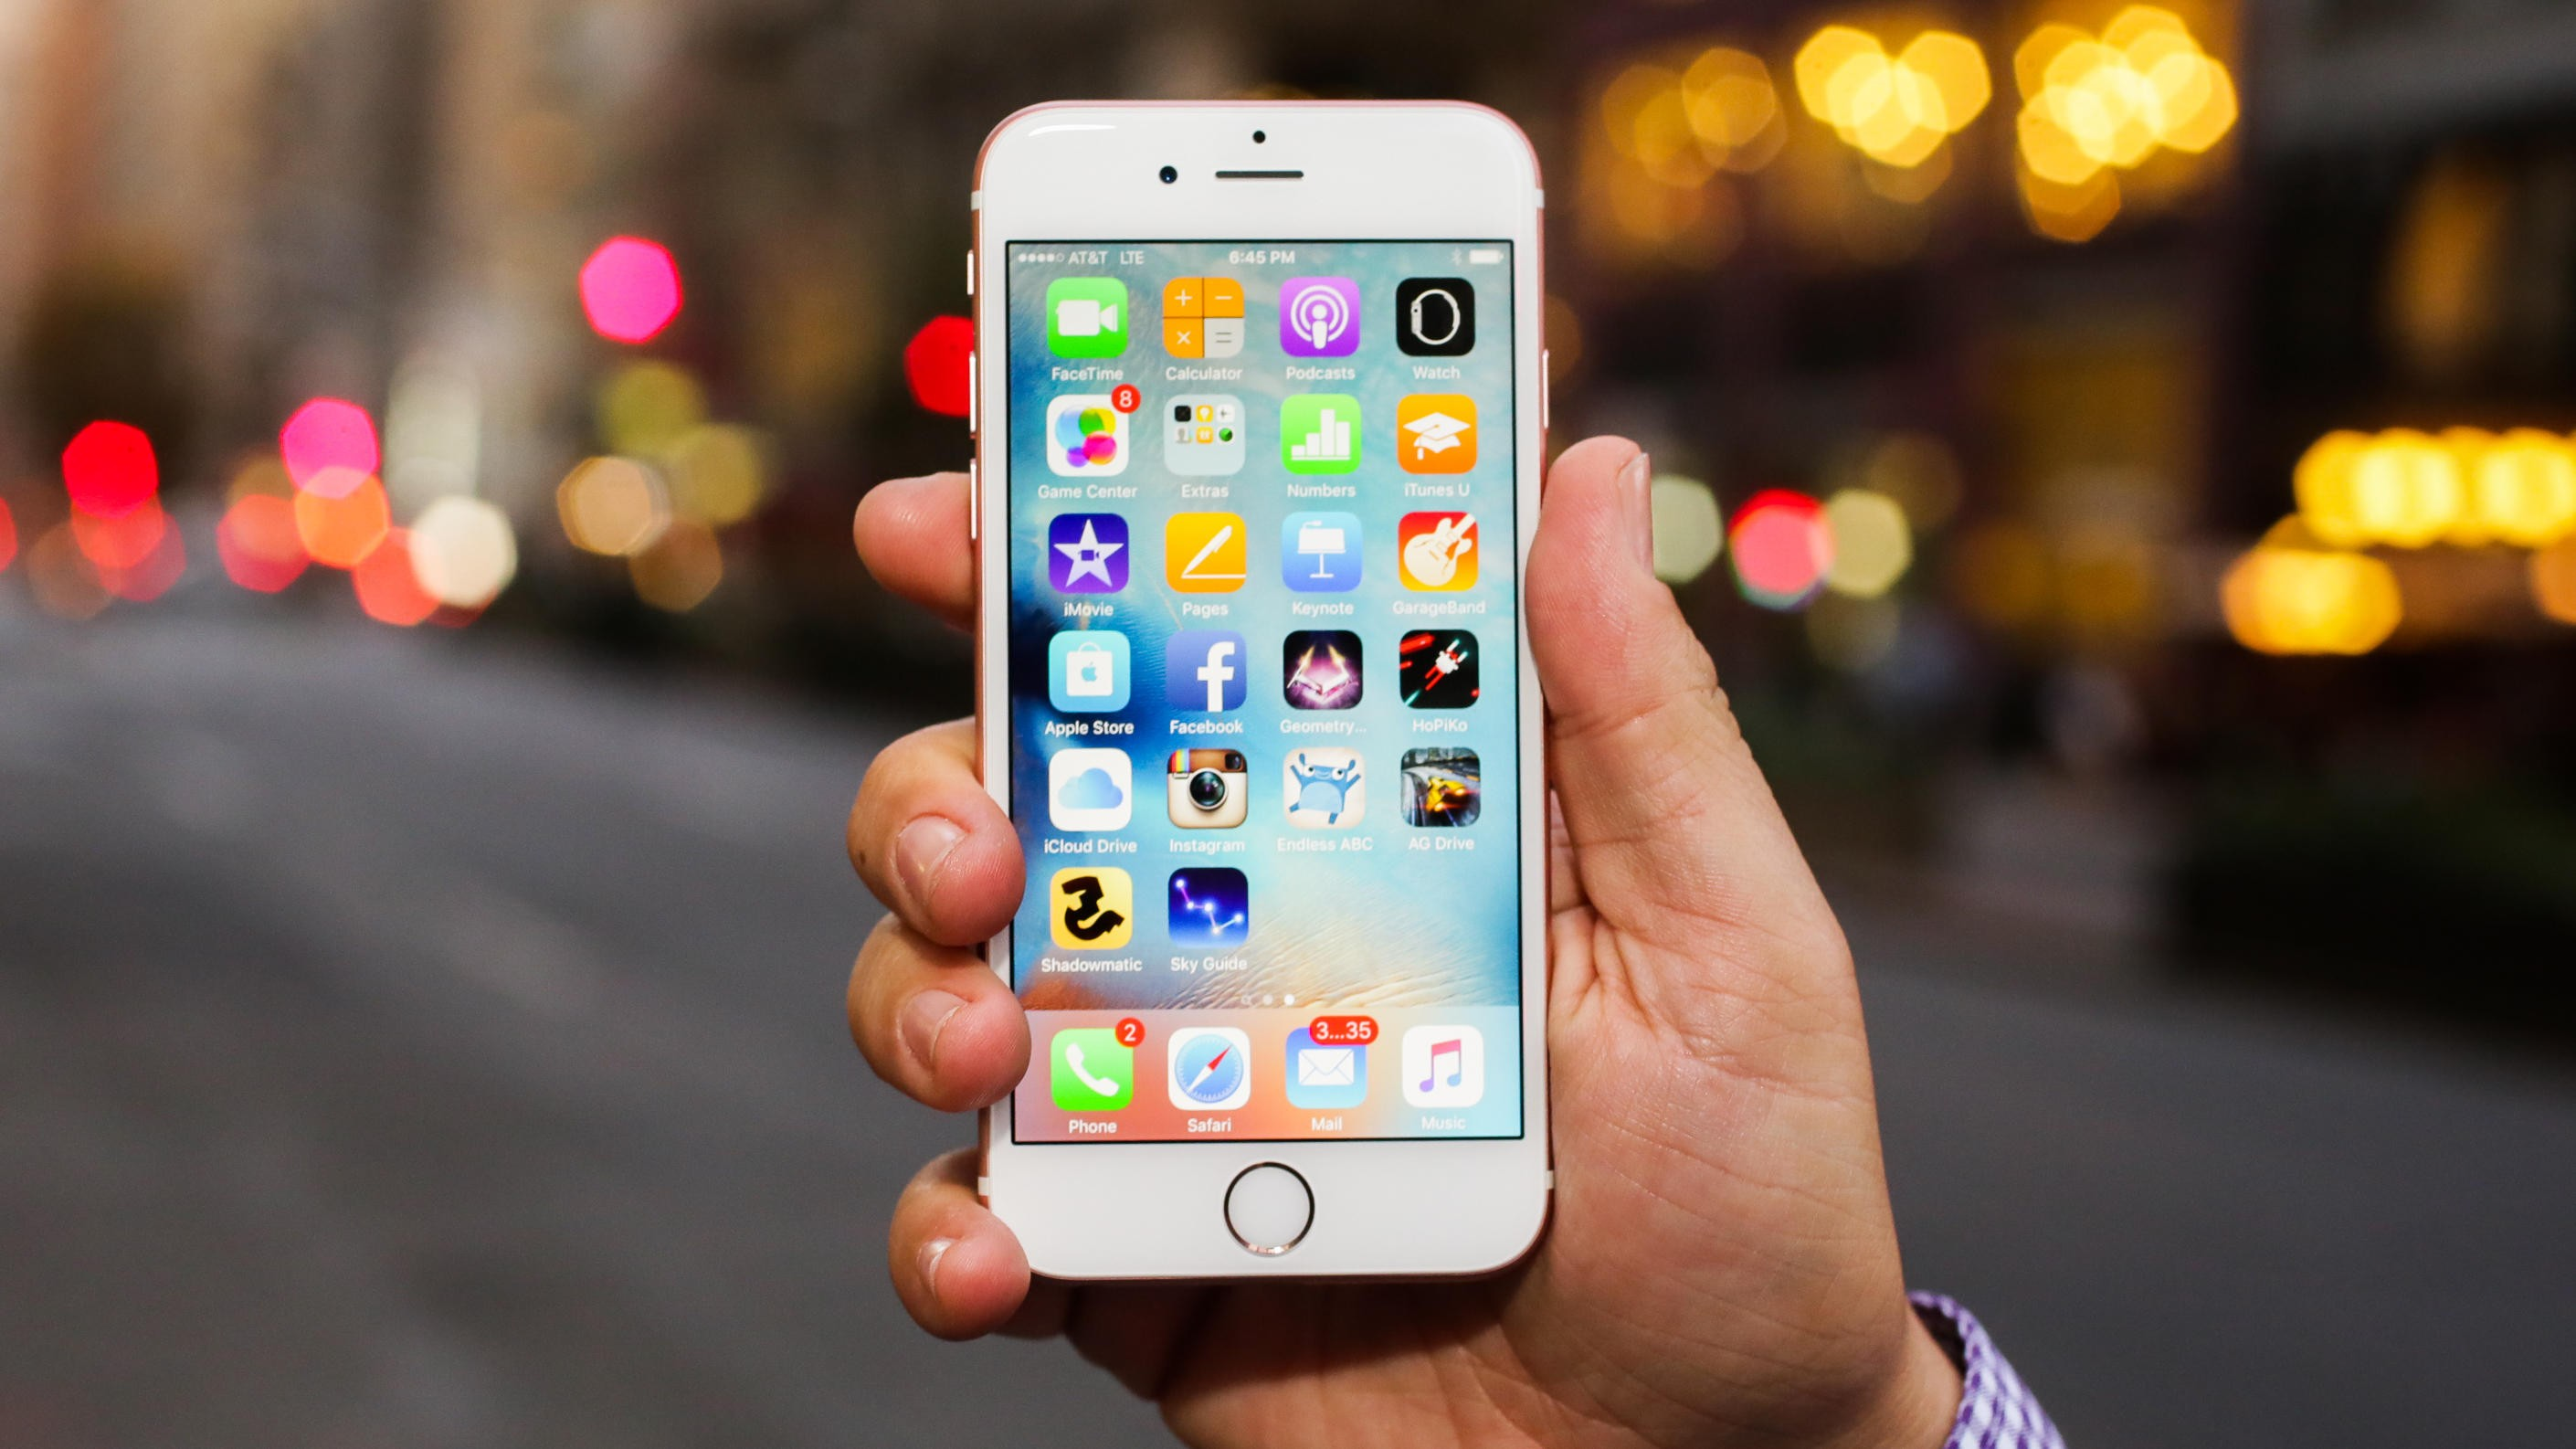 iphone 1 price in india 2014